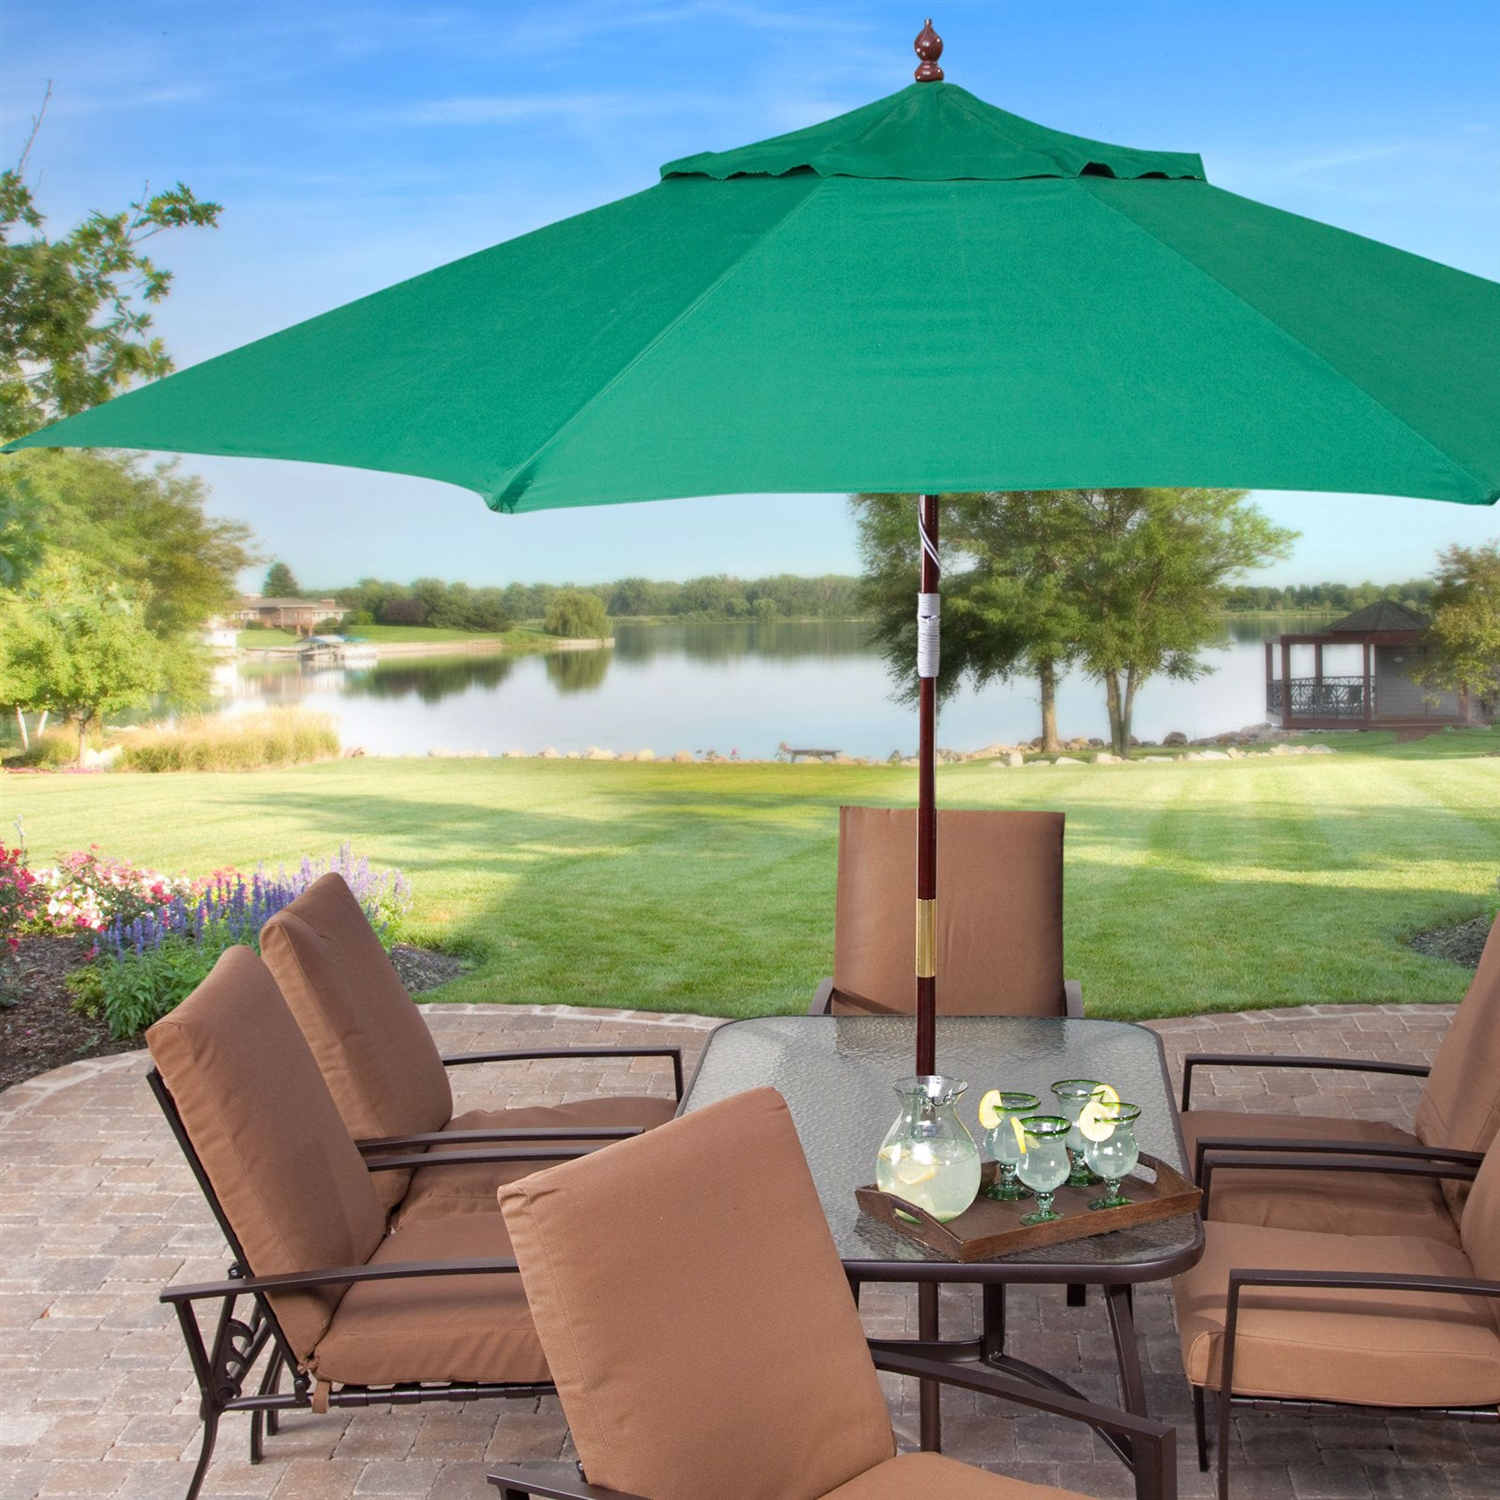 11 Ft Wood Patio Umbrella With Green Canopy   Commercial Grade